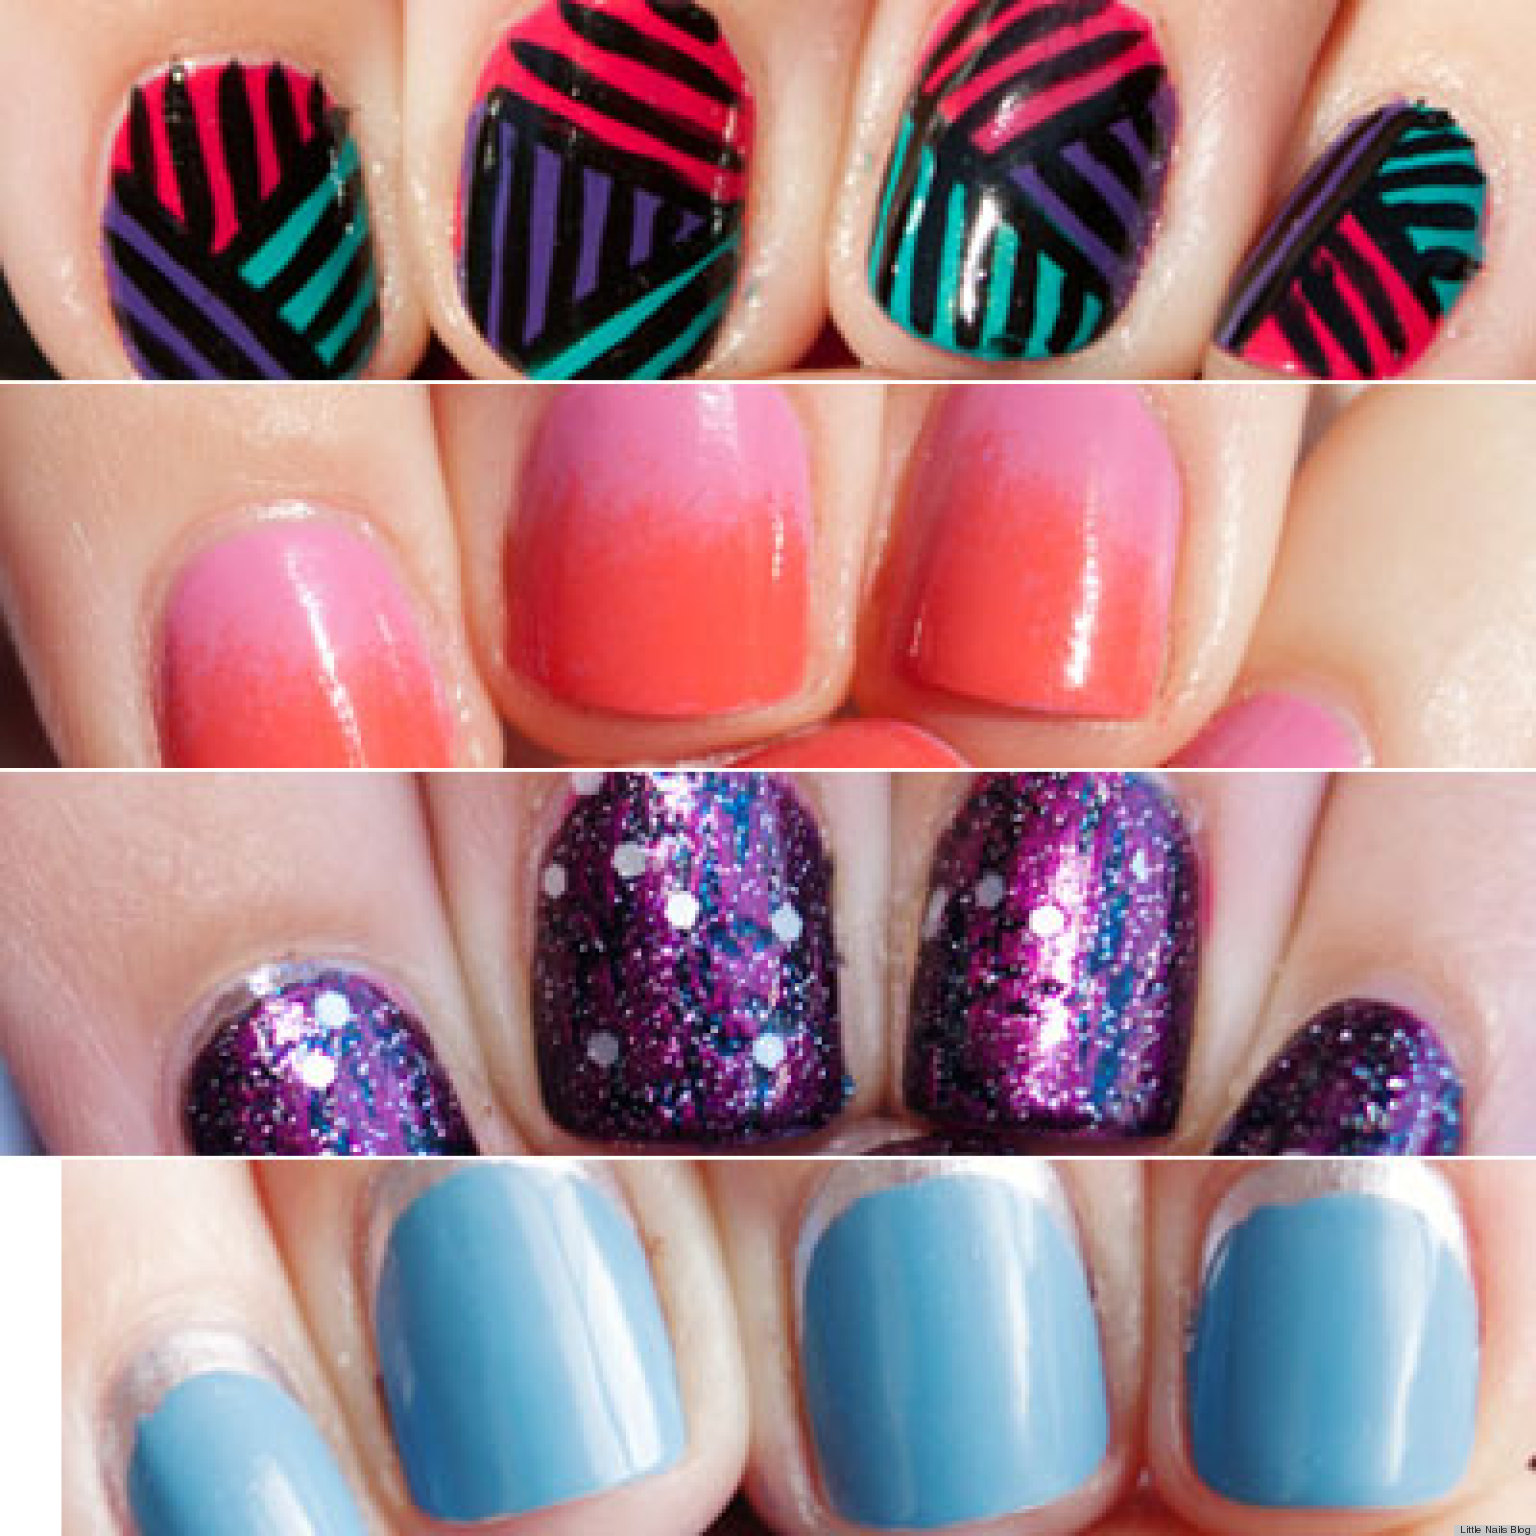 Nail Art For Short Nails At Home: 13 Nail Art Ideas For Teeny Tiny Fingertips (PHOTOS